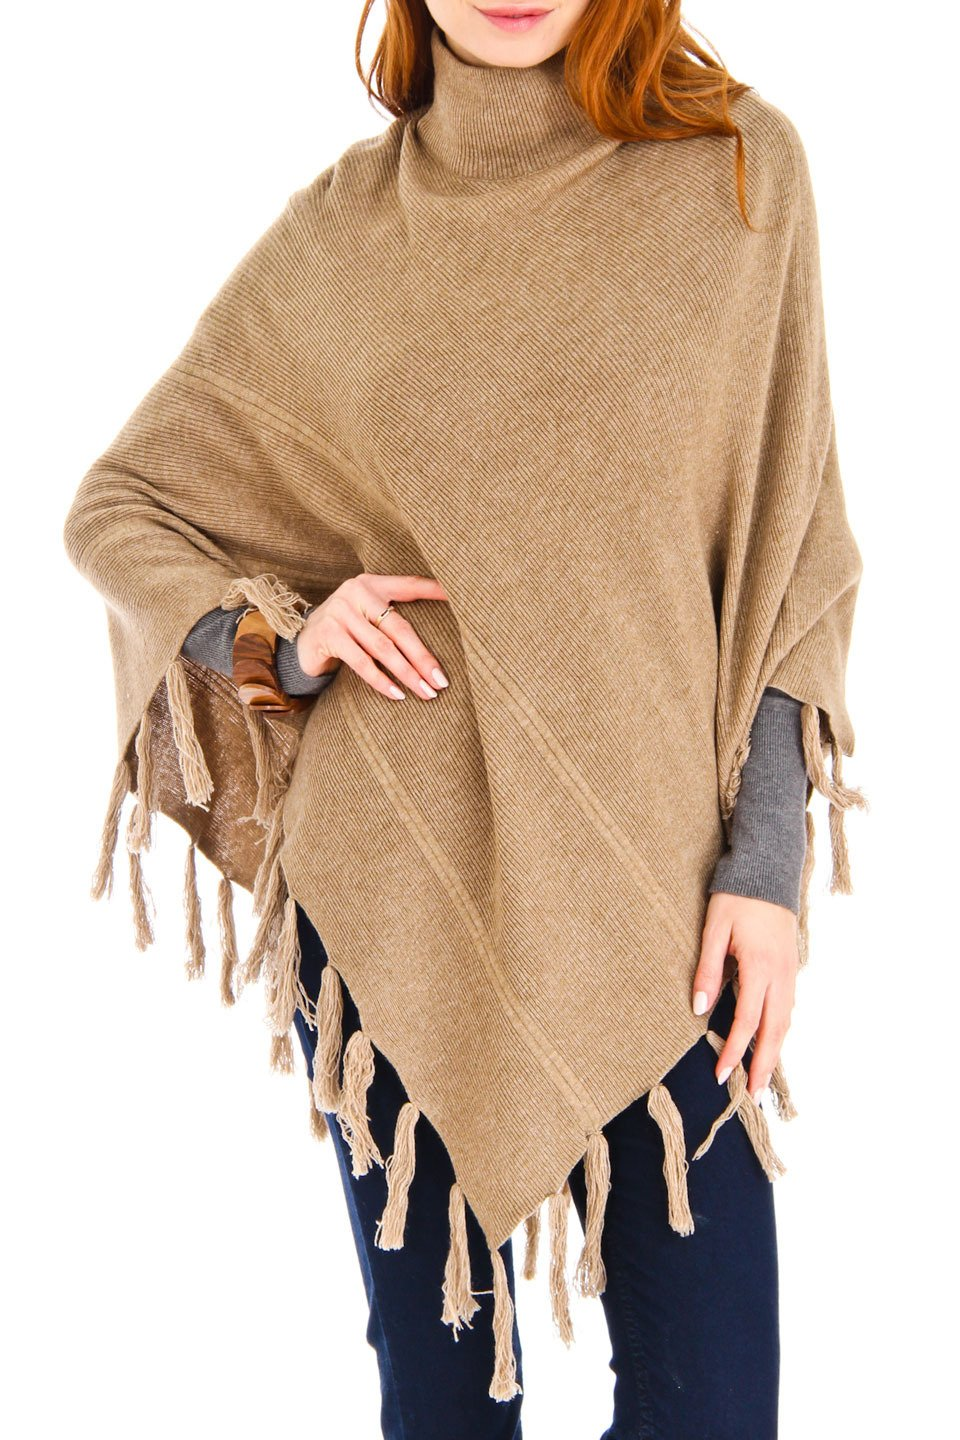 100% Mongolian Cashmere Turtleneck Poncho/Wrap with hand made fringes (Camel/beige)